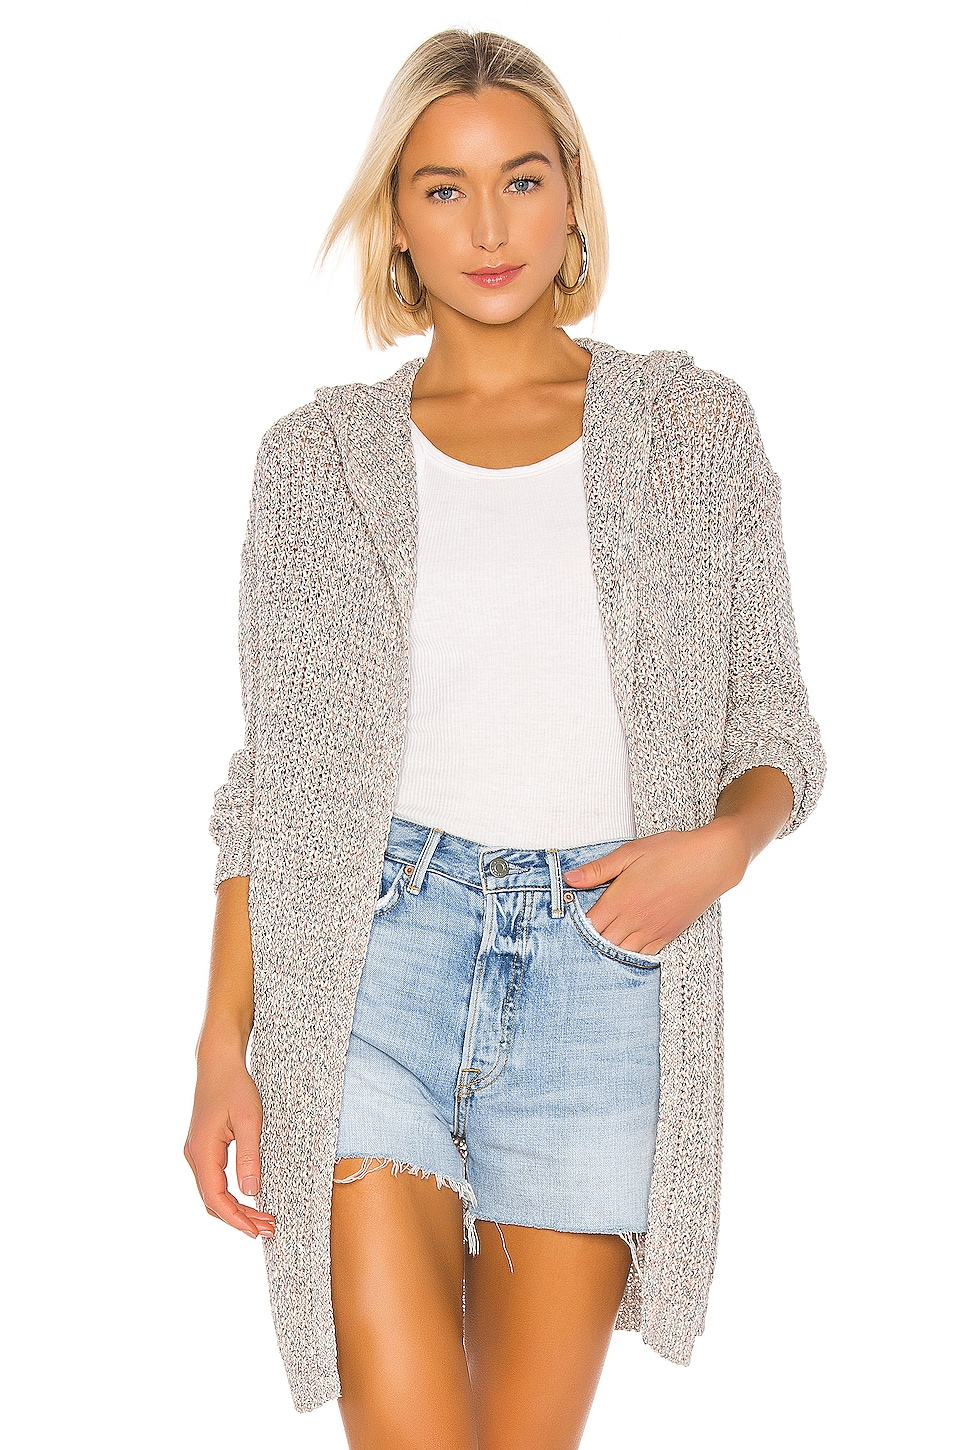 One Grey Day Paloma Cardigan in Sea Combo